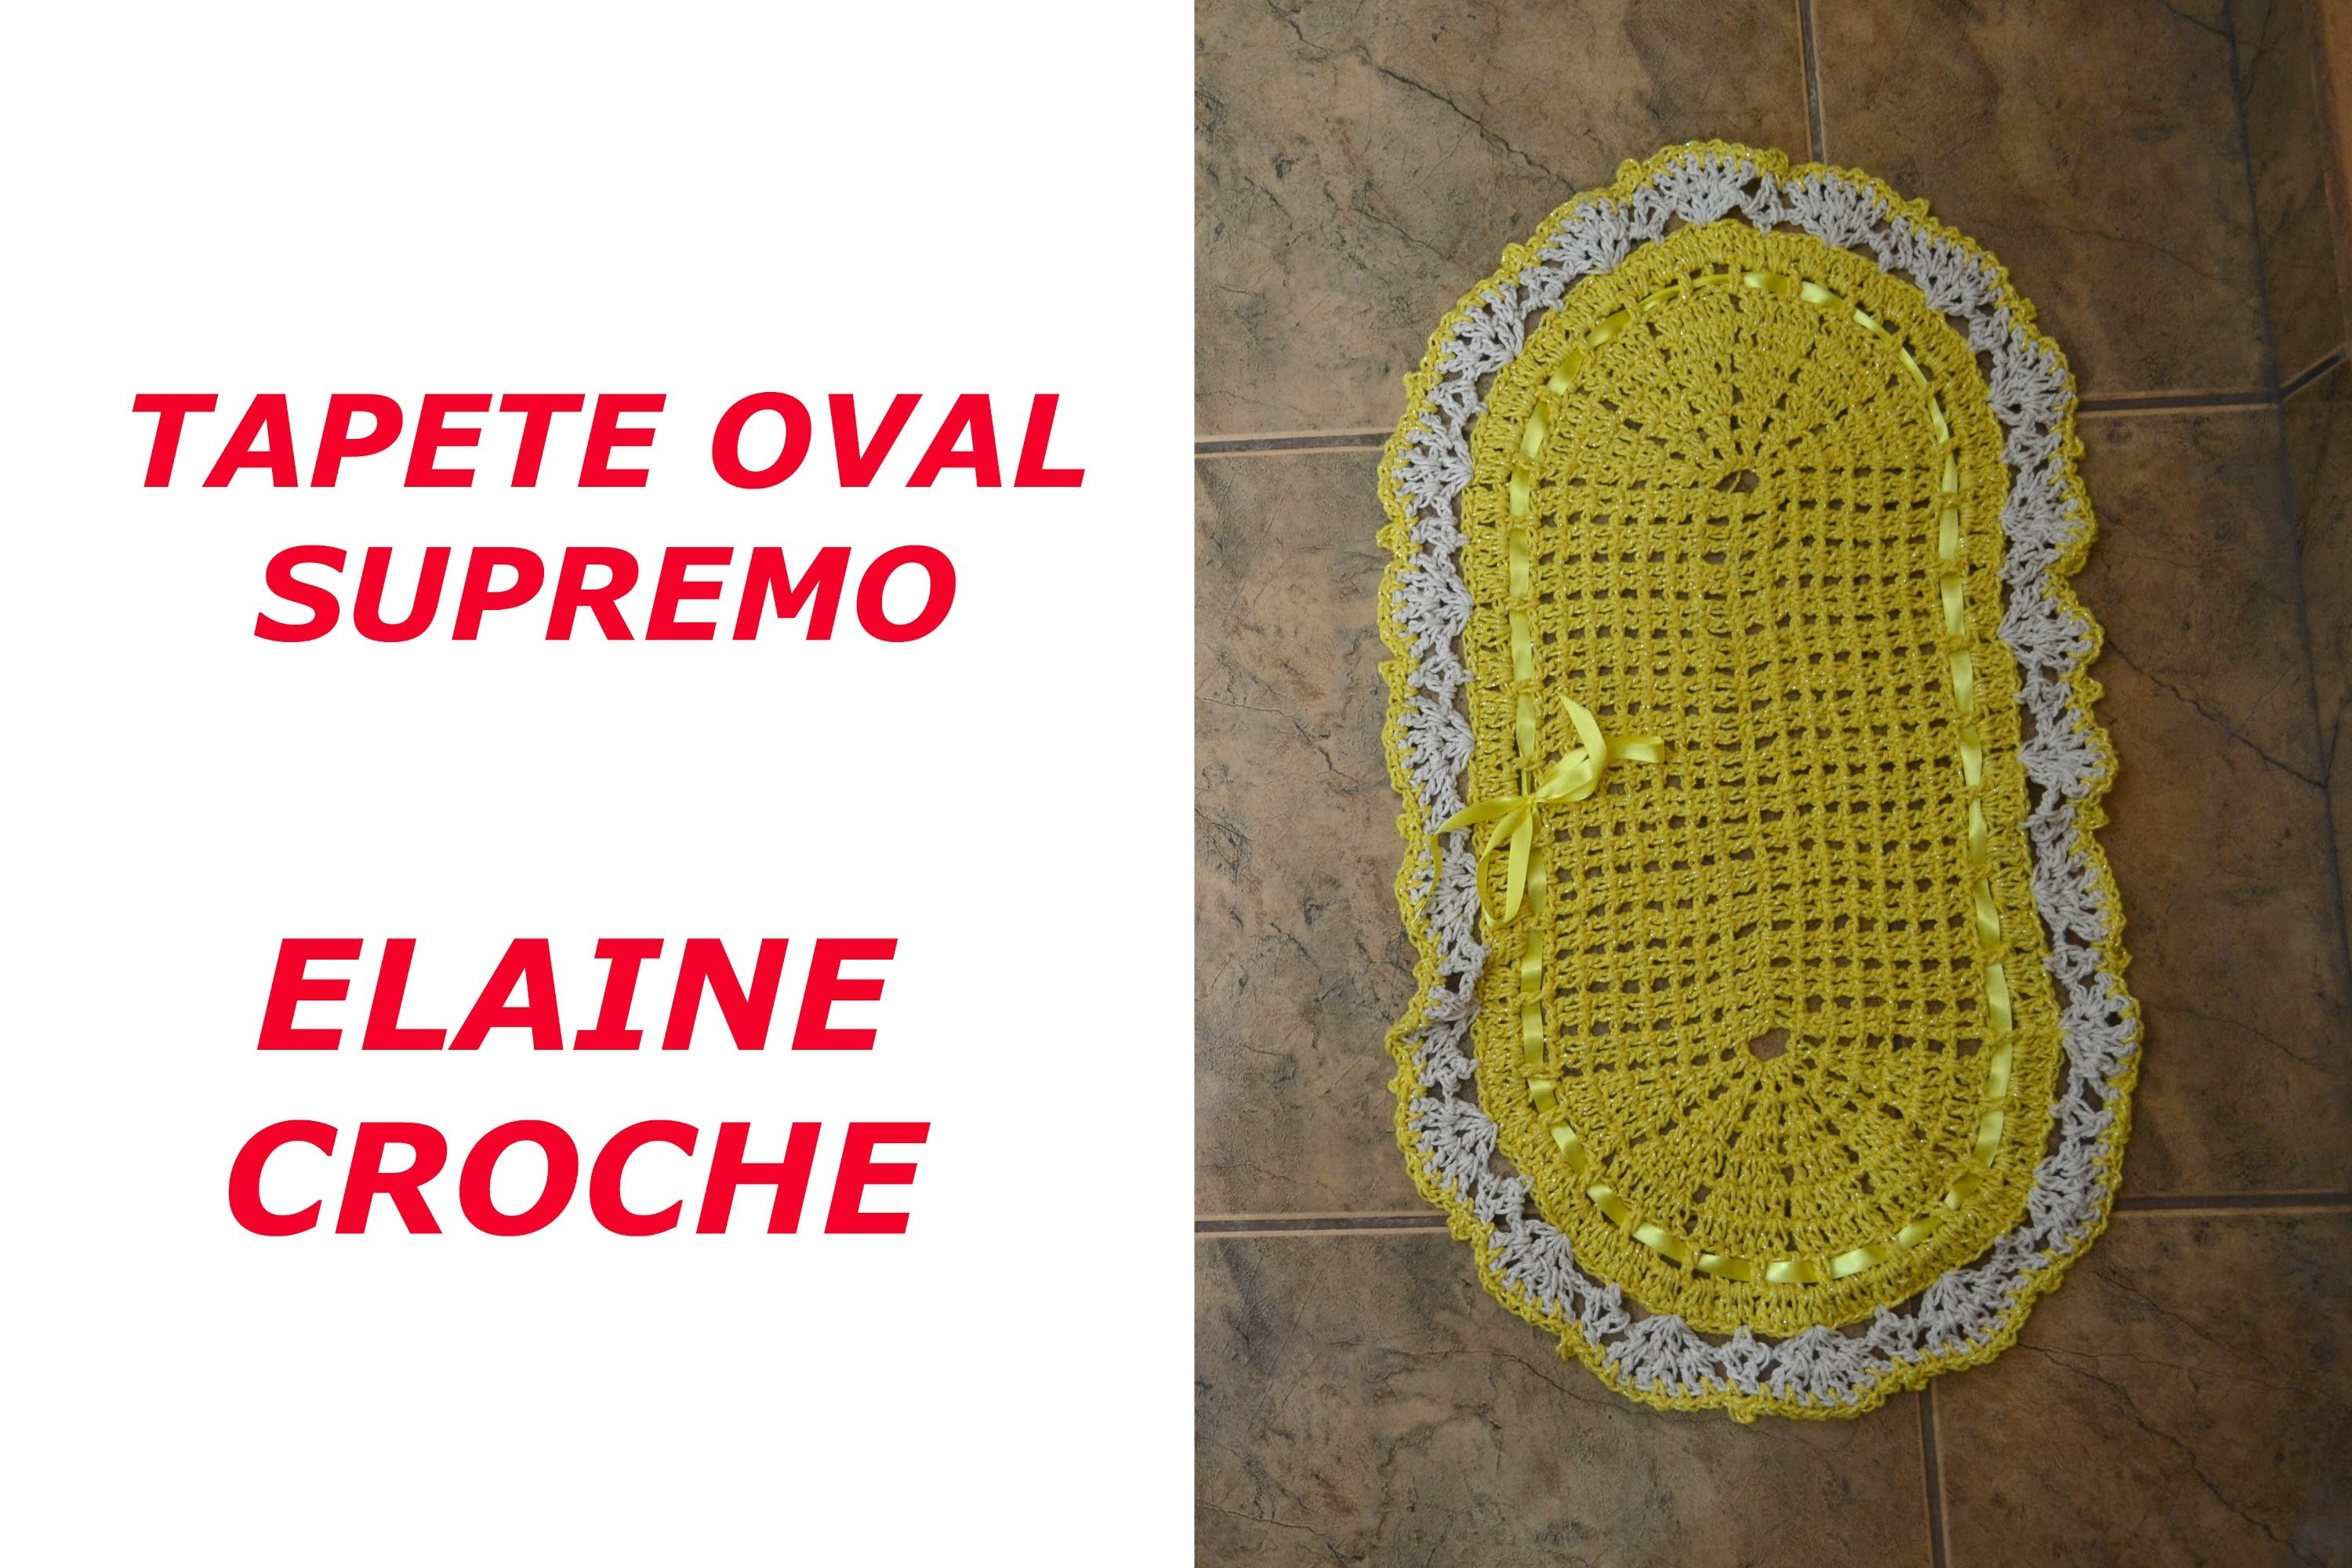 TAPETE OVAL SUPREMO CROCHE